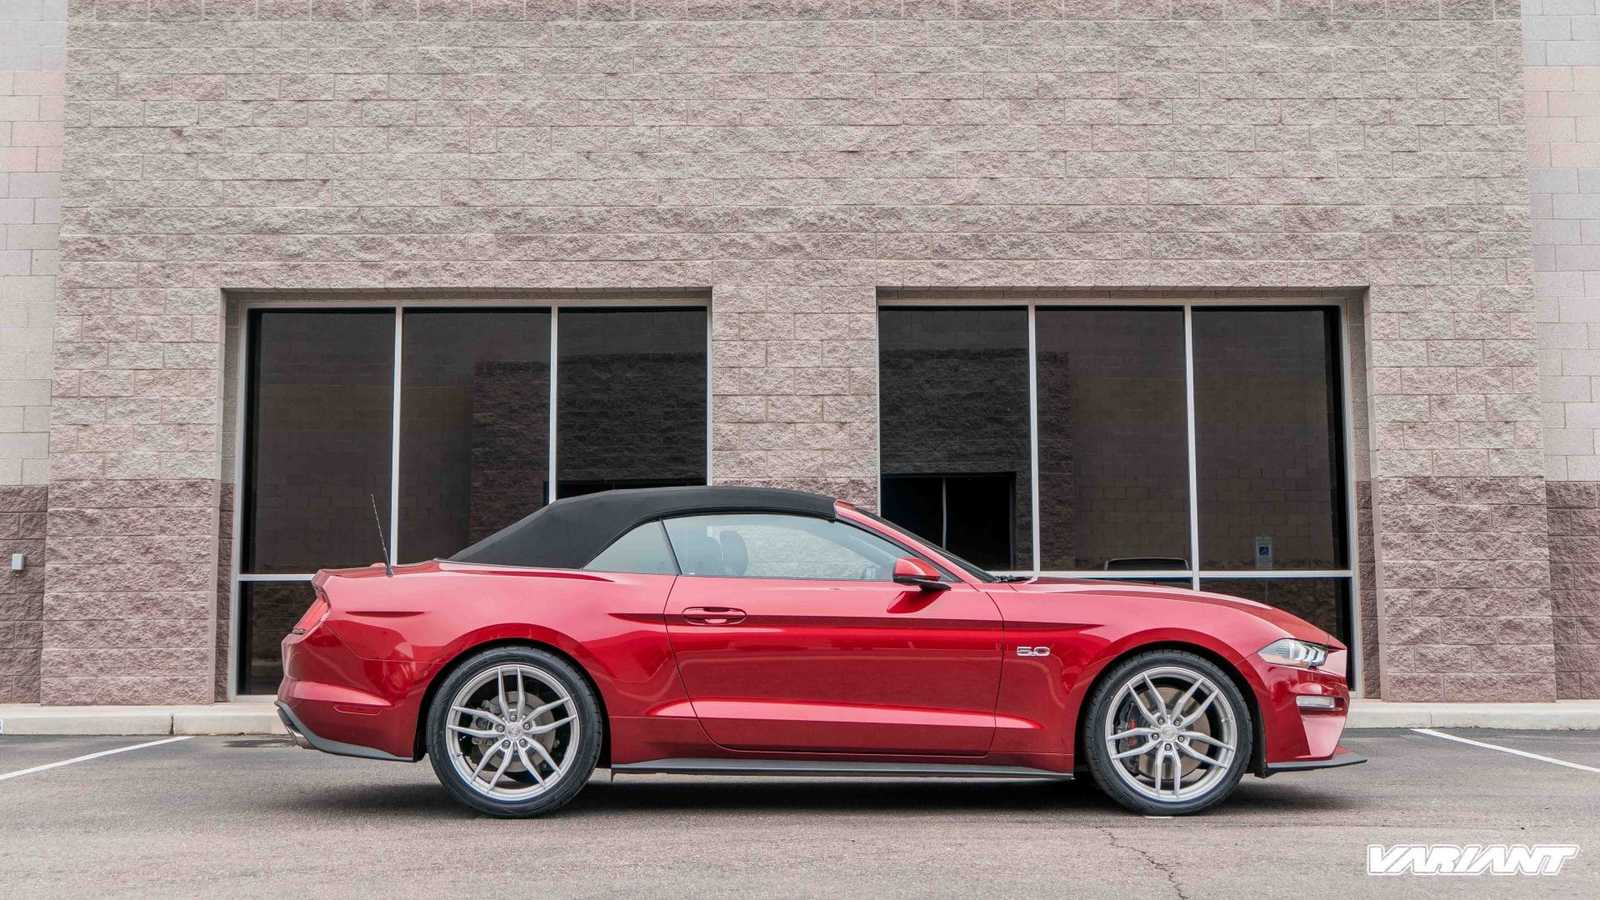 ruby-red-ford-mustang-gtpp-variant-krypton-brushed-aluminium-rotory-forged-concave-wheels.jpg